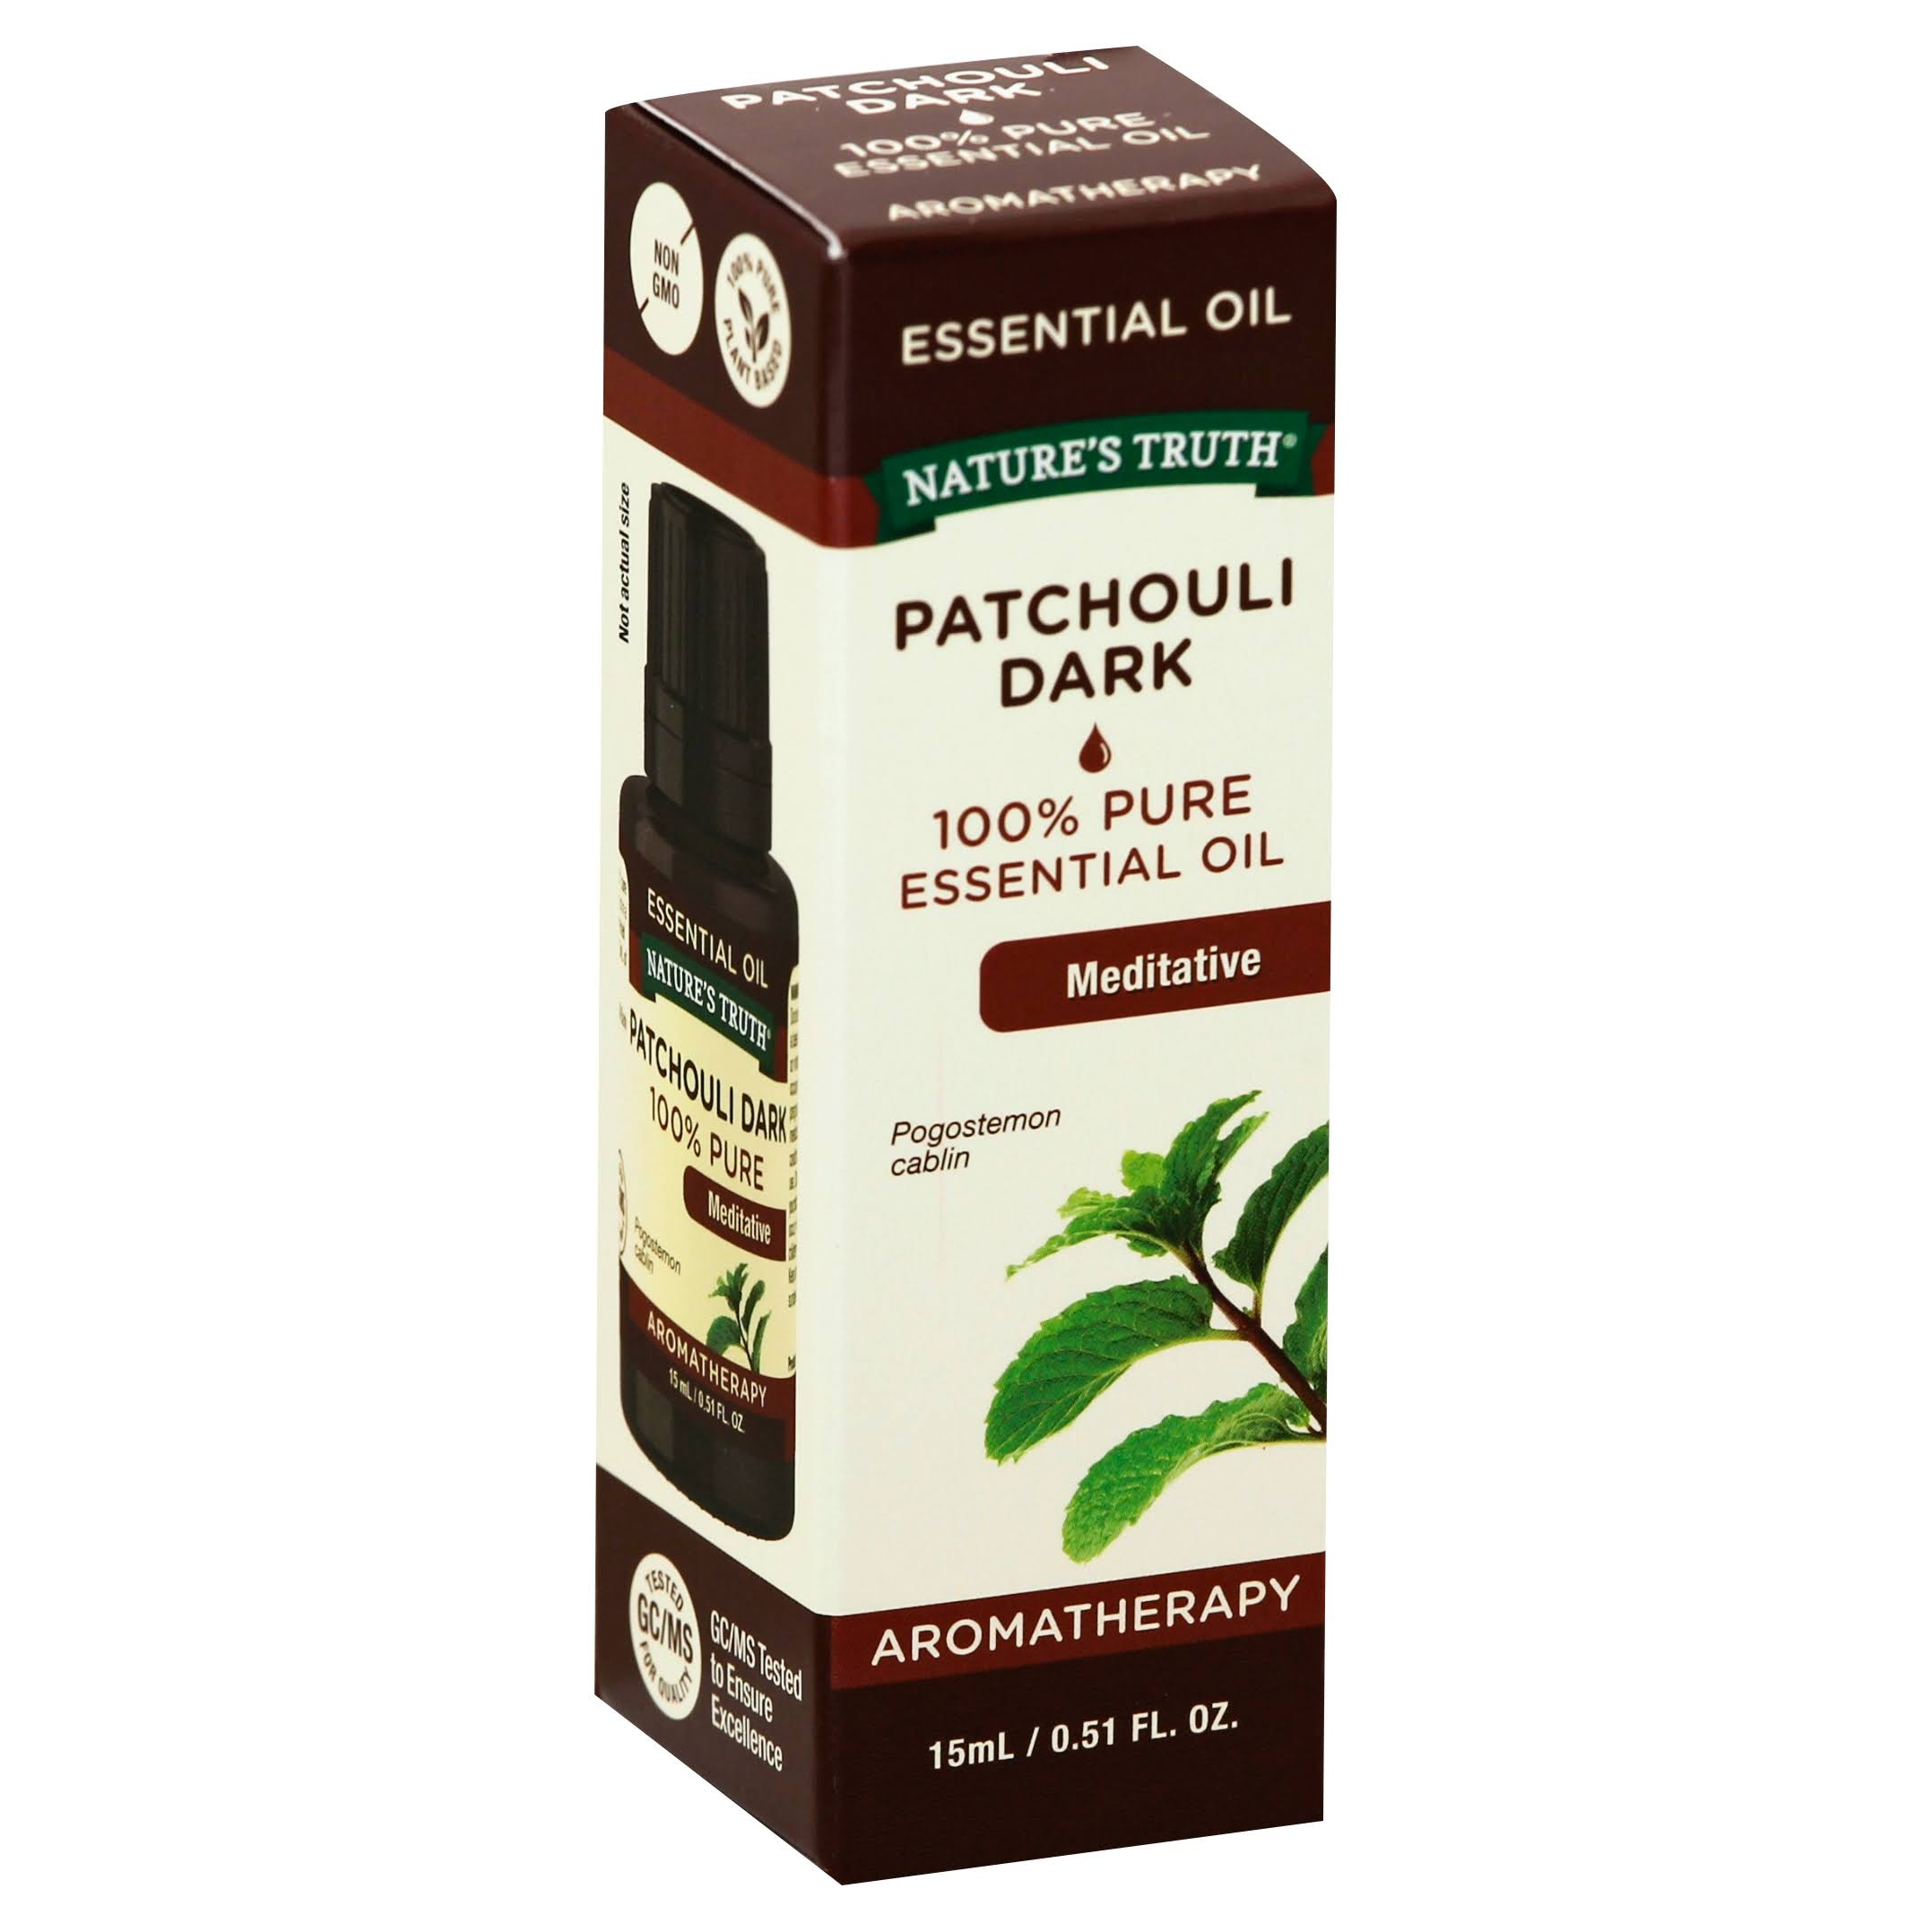 Natures Truth Aromatherapy Essential Oil - Patchouli Dark, 0.51oz